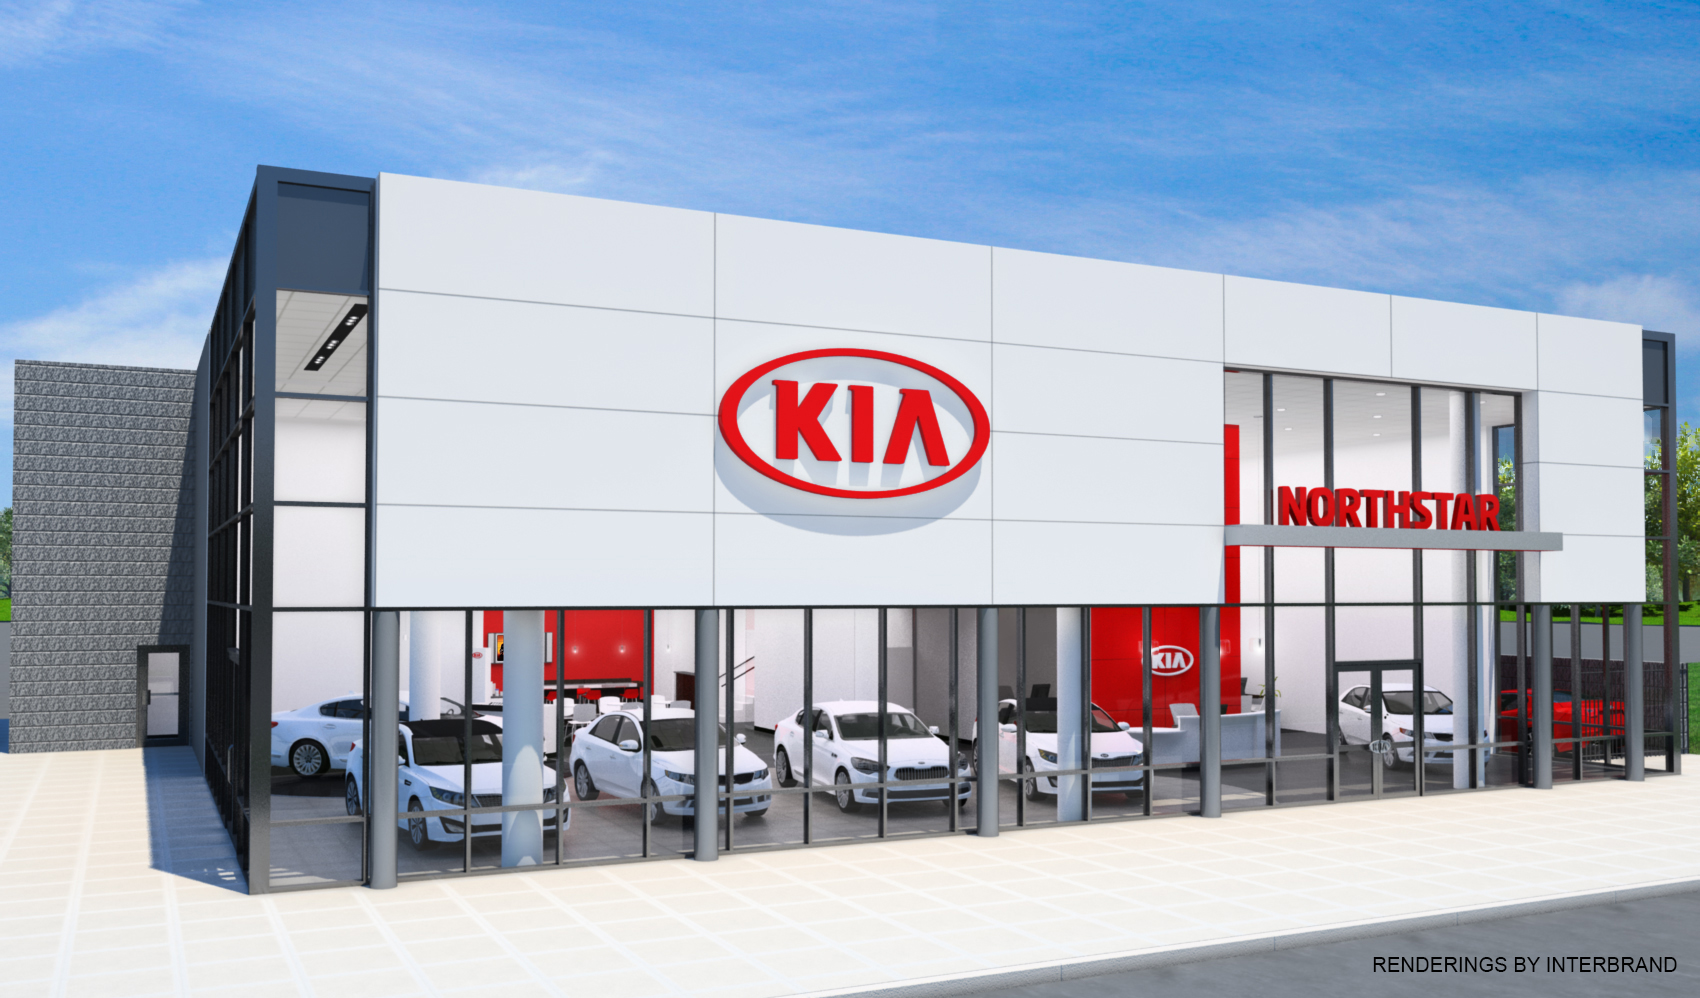 [] North Star Kia_Renderings_02.jpg